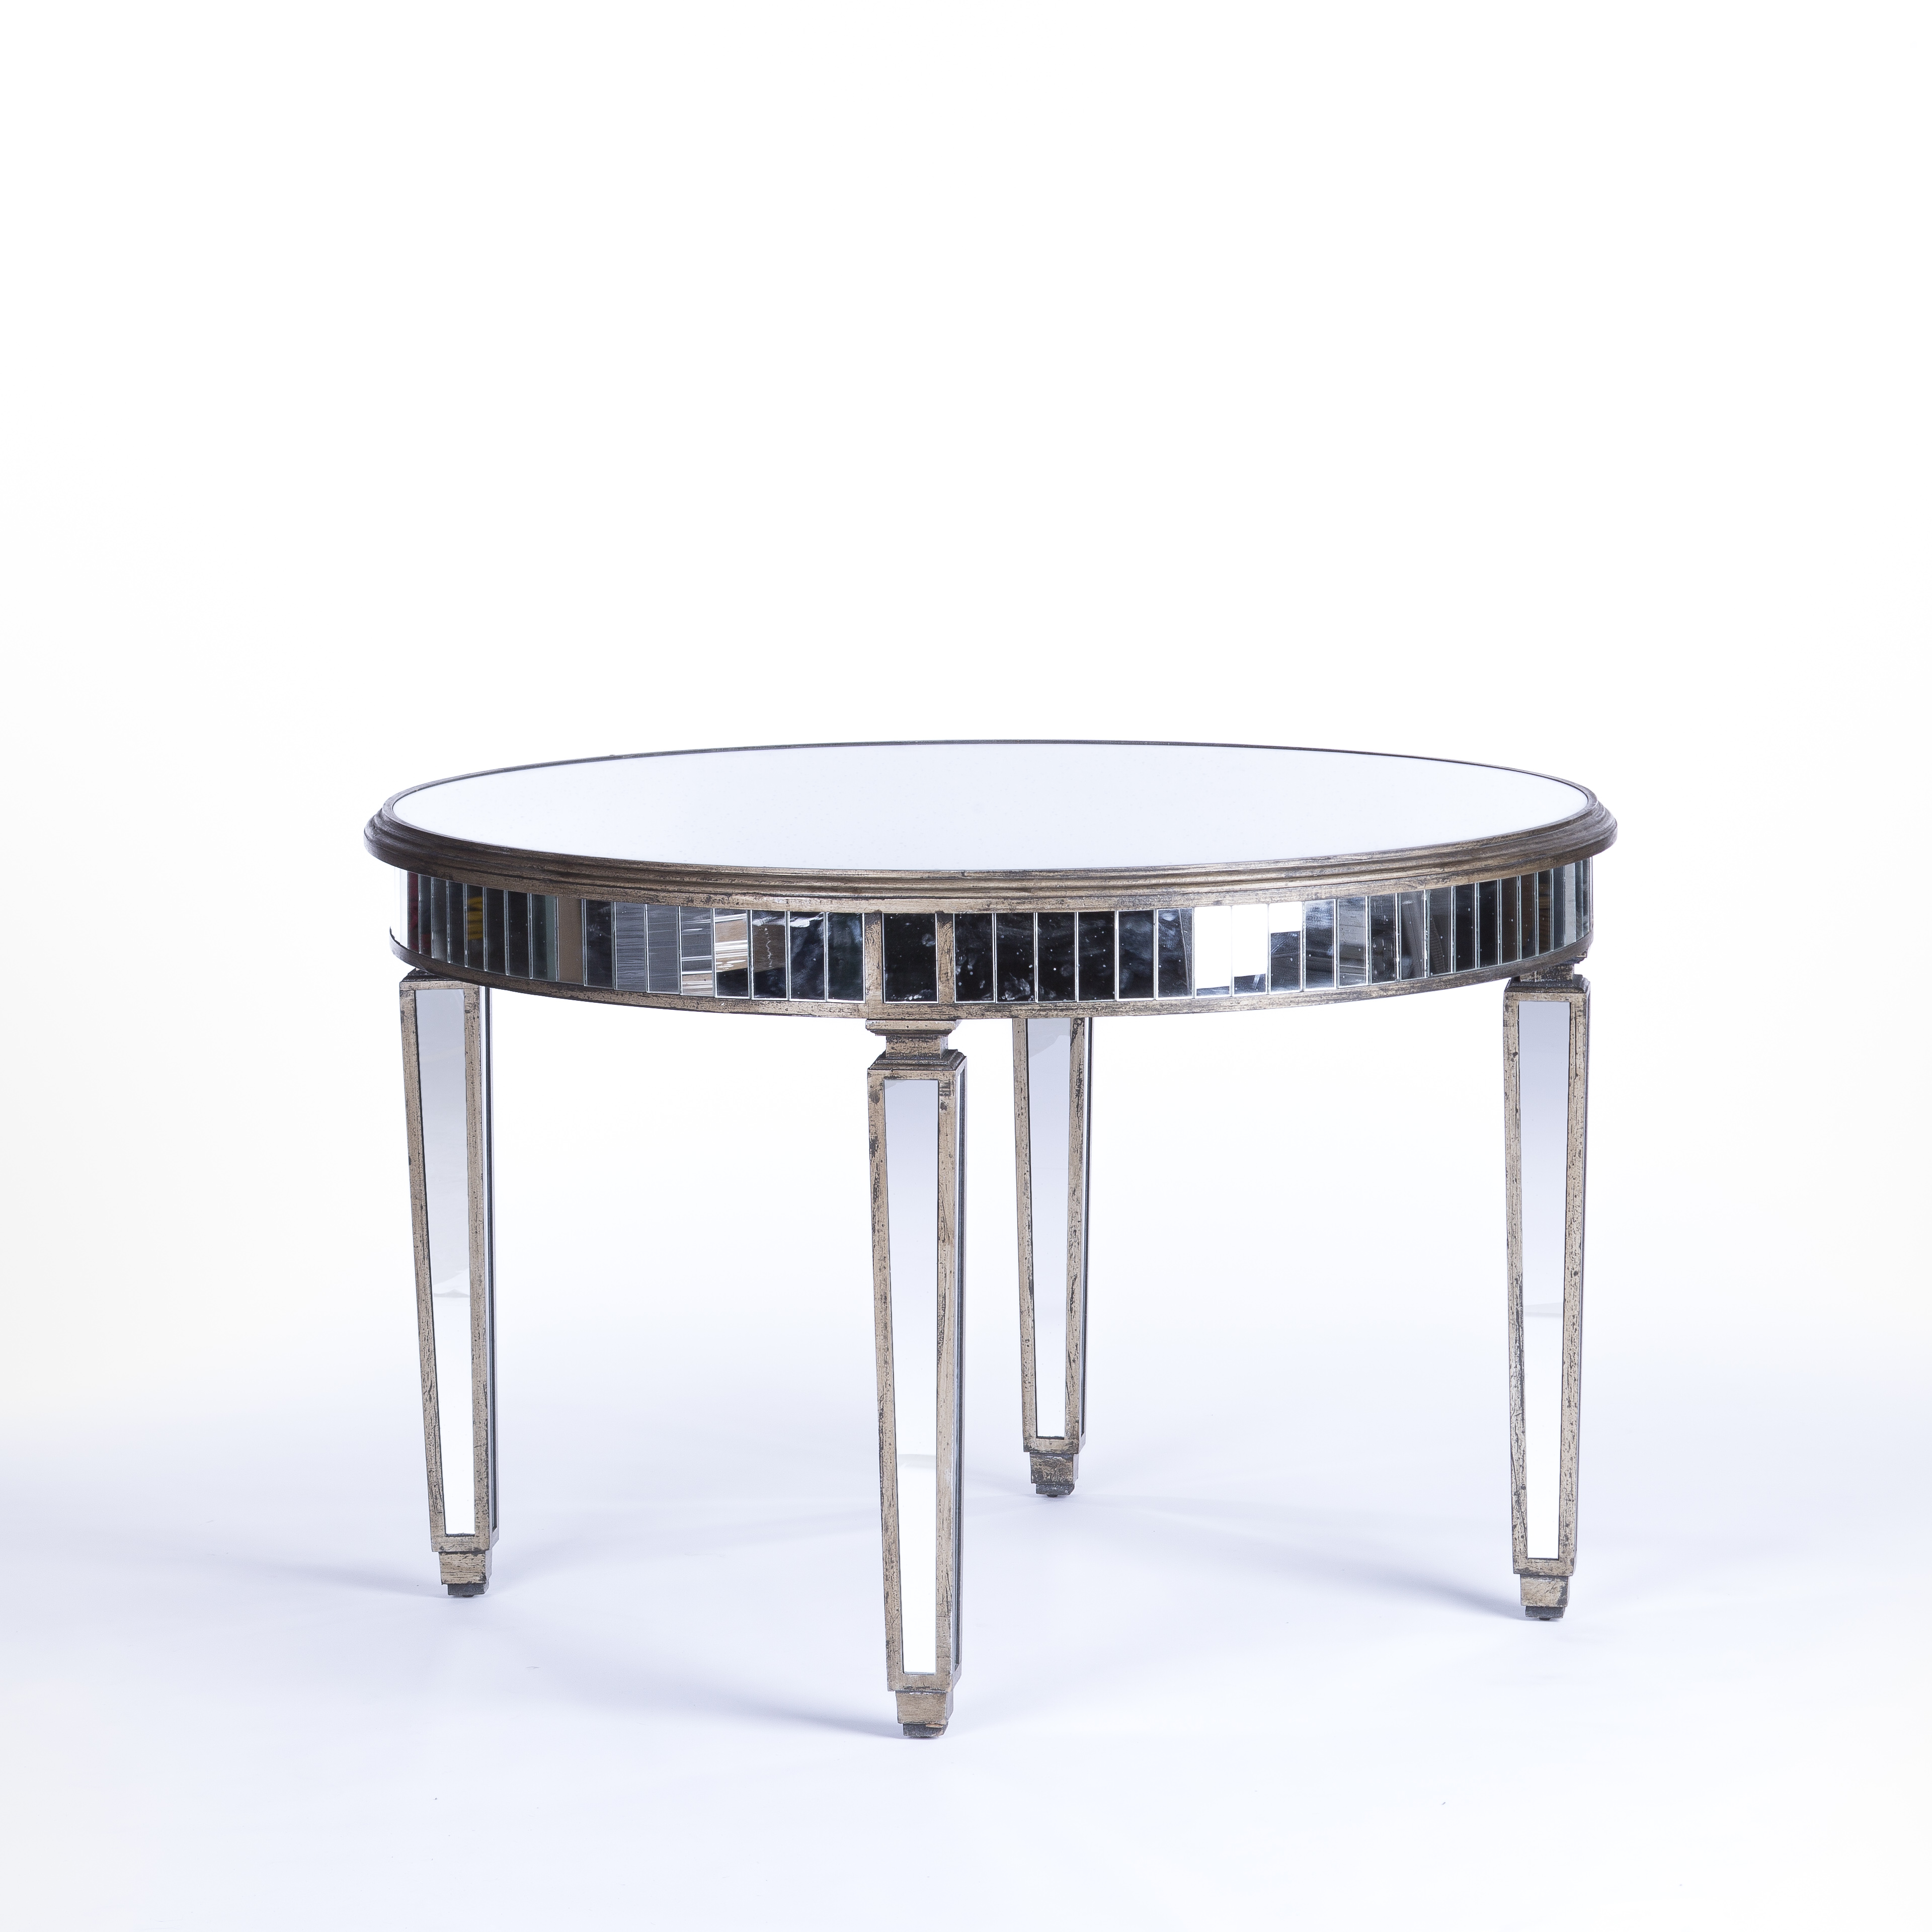 Mirrored Furniture Rental